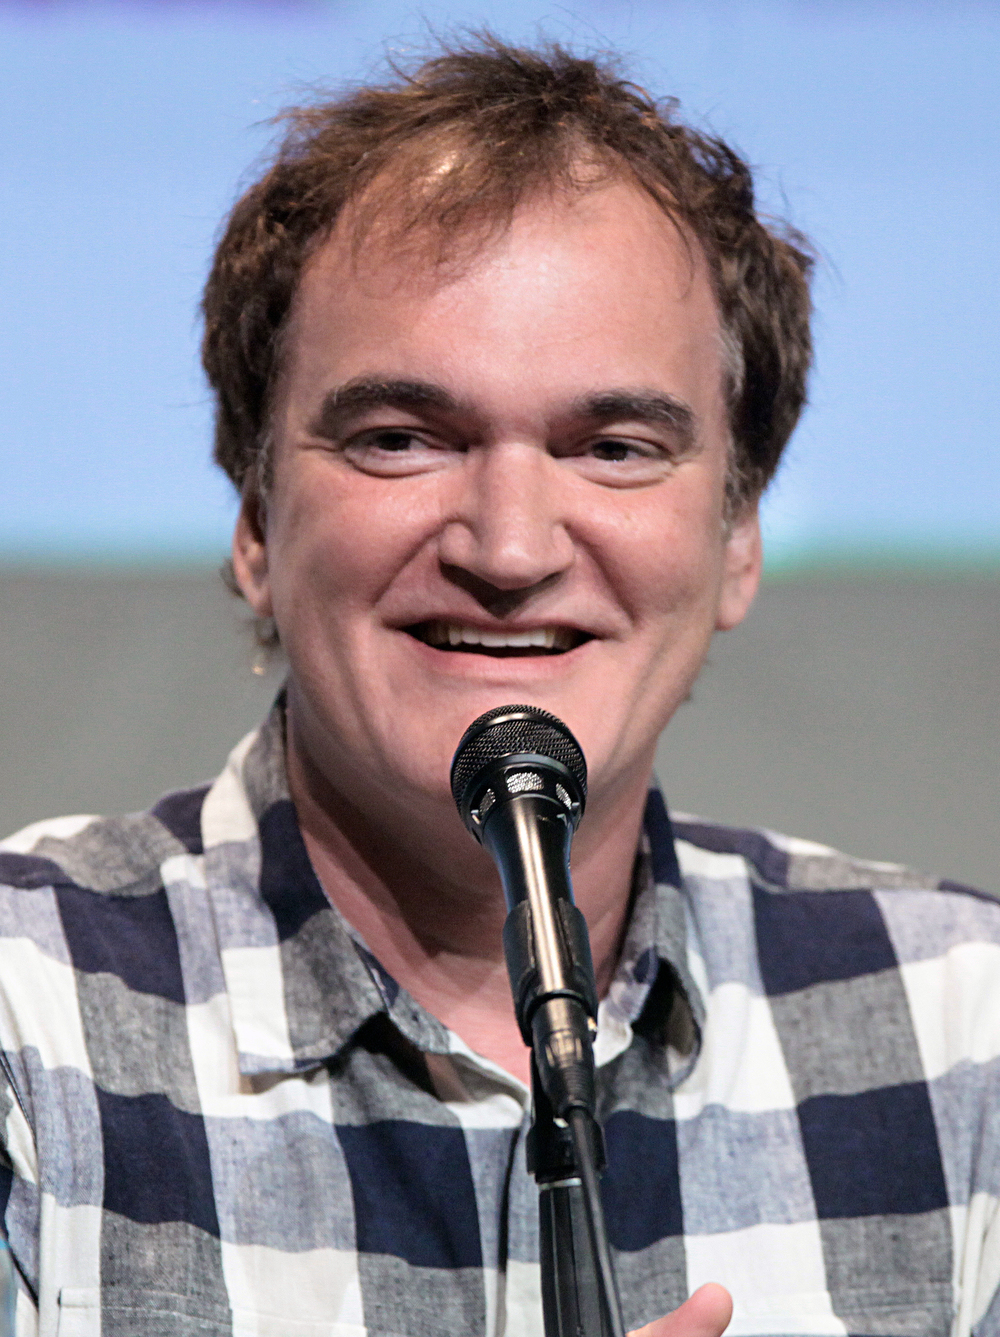 Quentin Tarantino Discussion